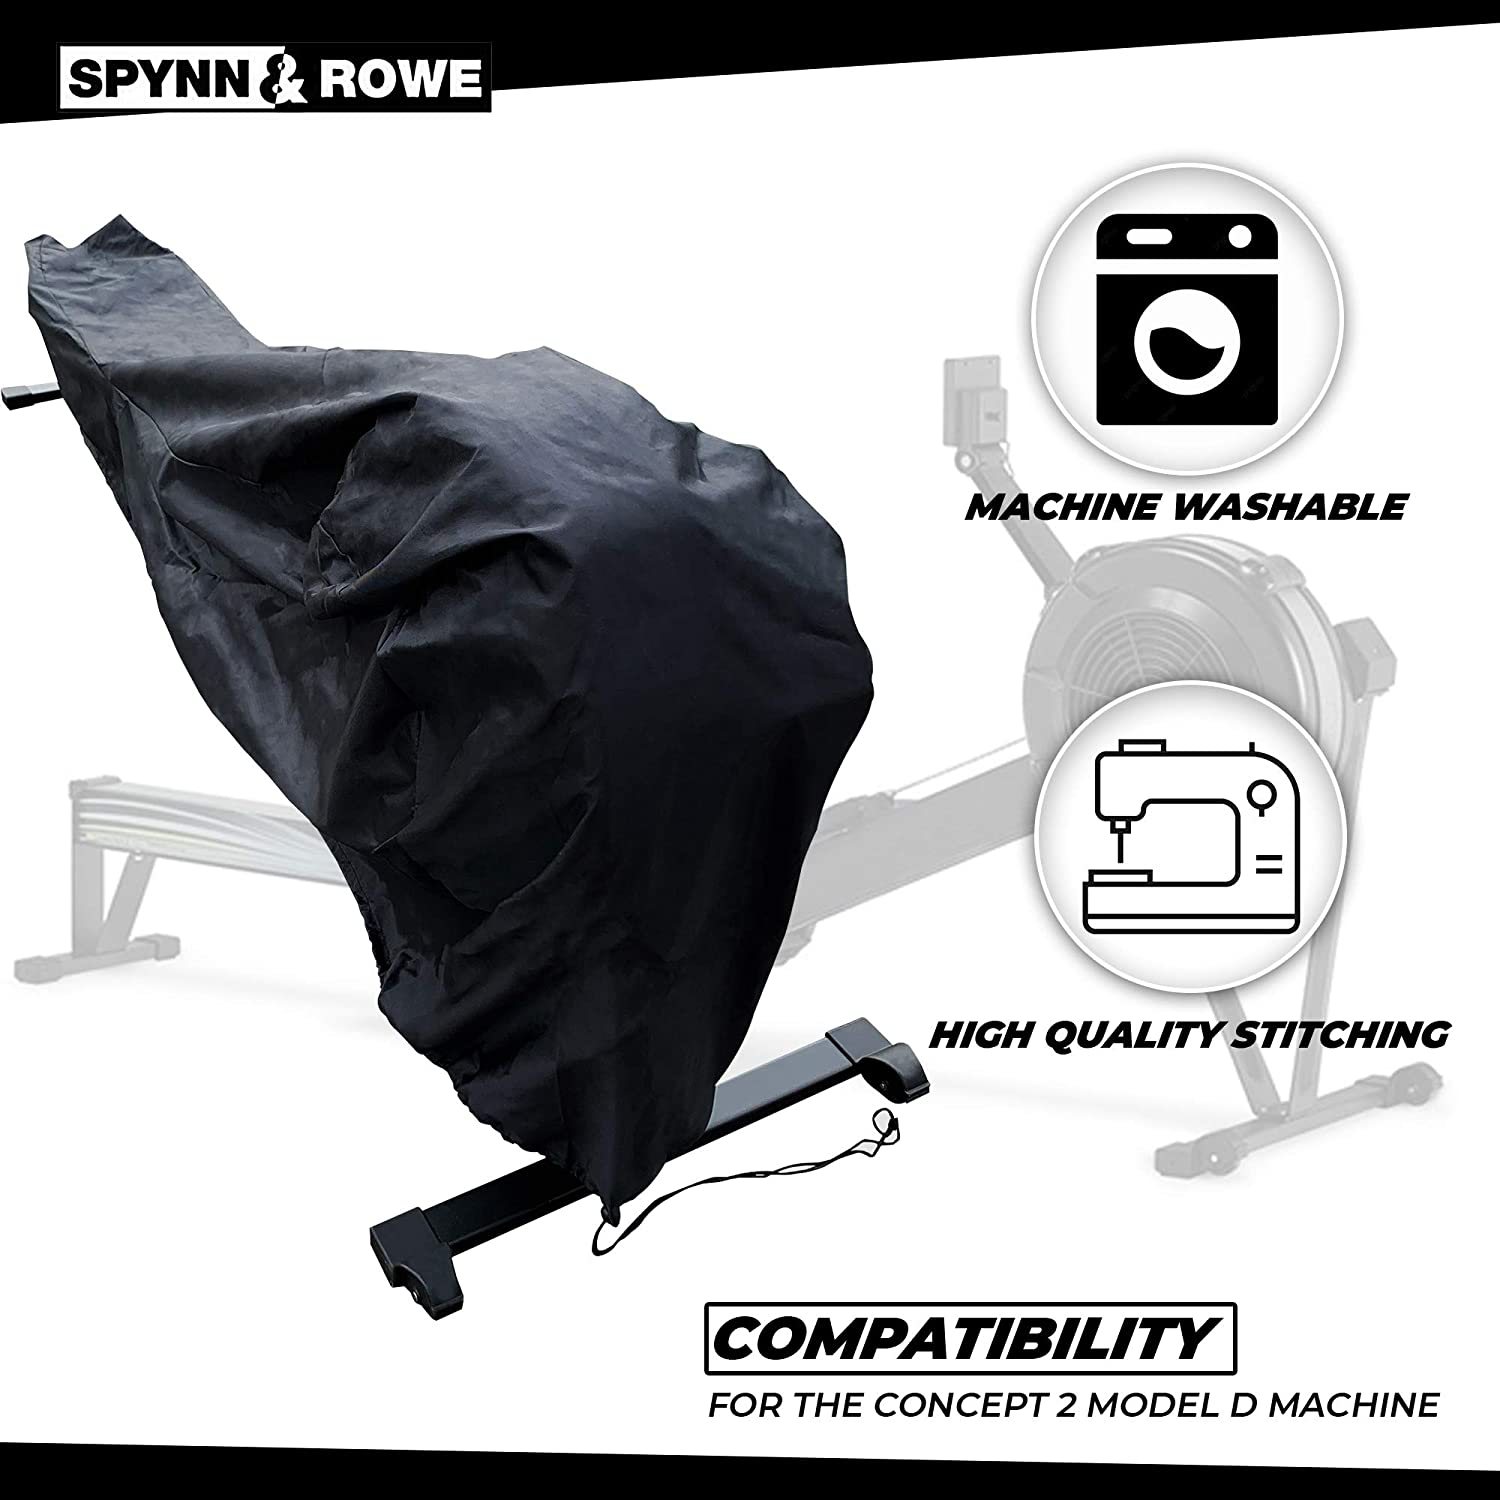 Spynn and Rowe Rowing Machine Cover Designed for The Concept 2 Model D Machine